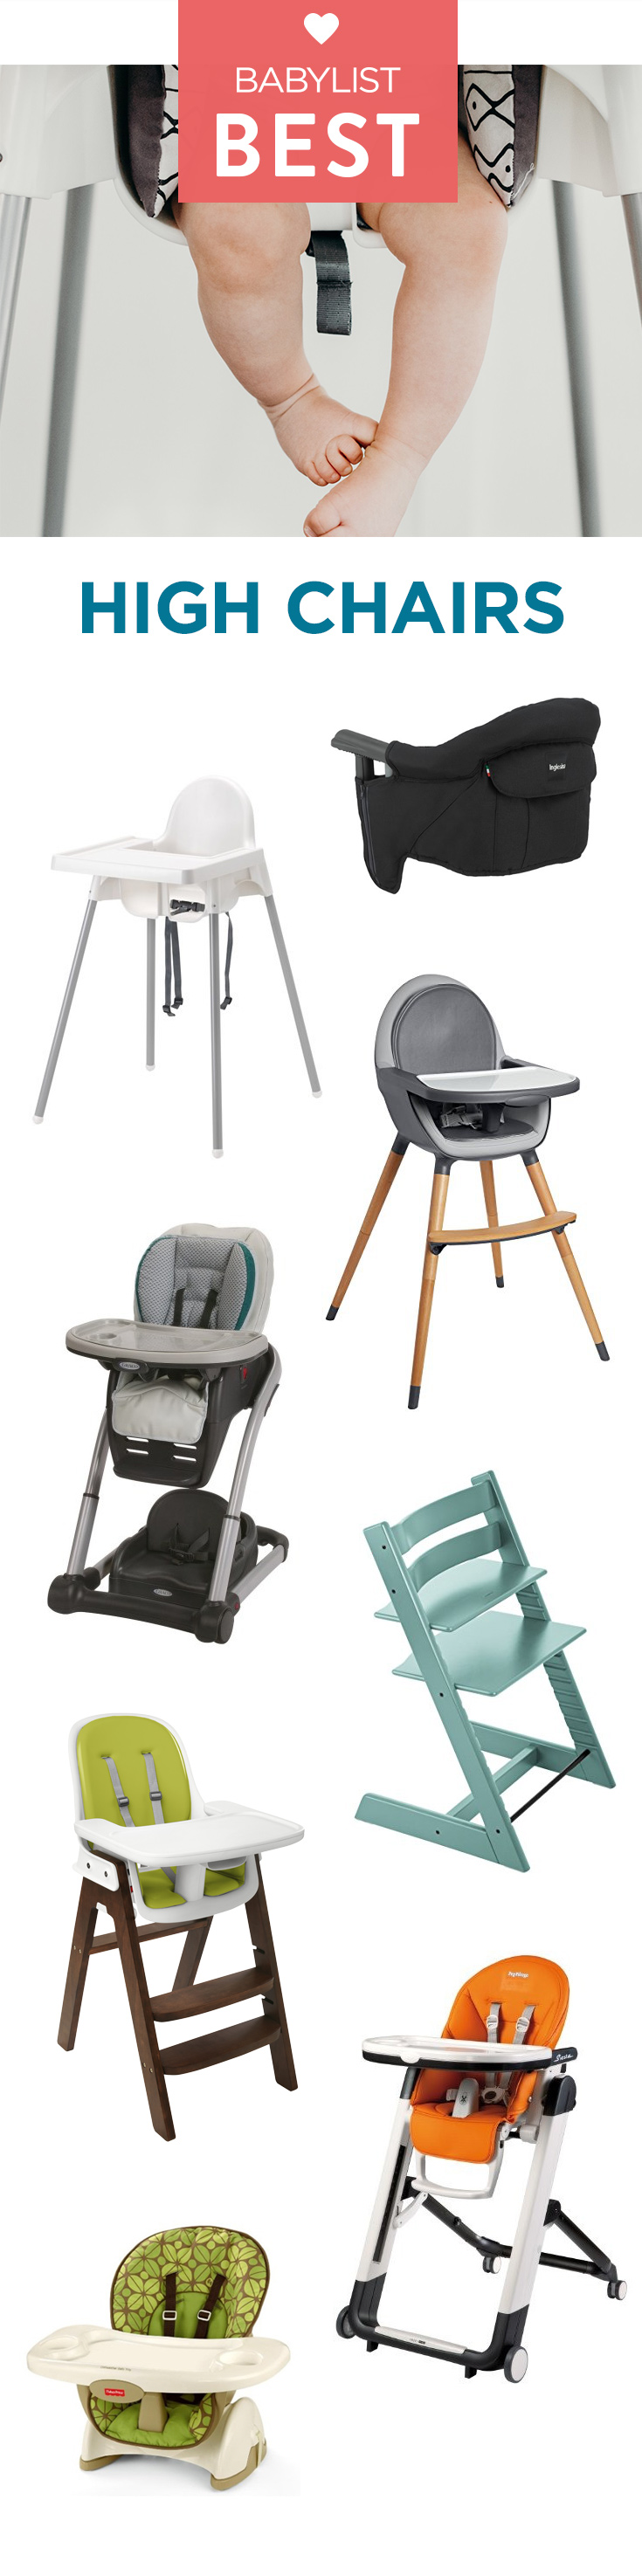 sc 1 st  Babylist & Best High Chairs of 2018